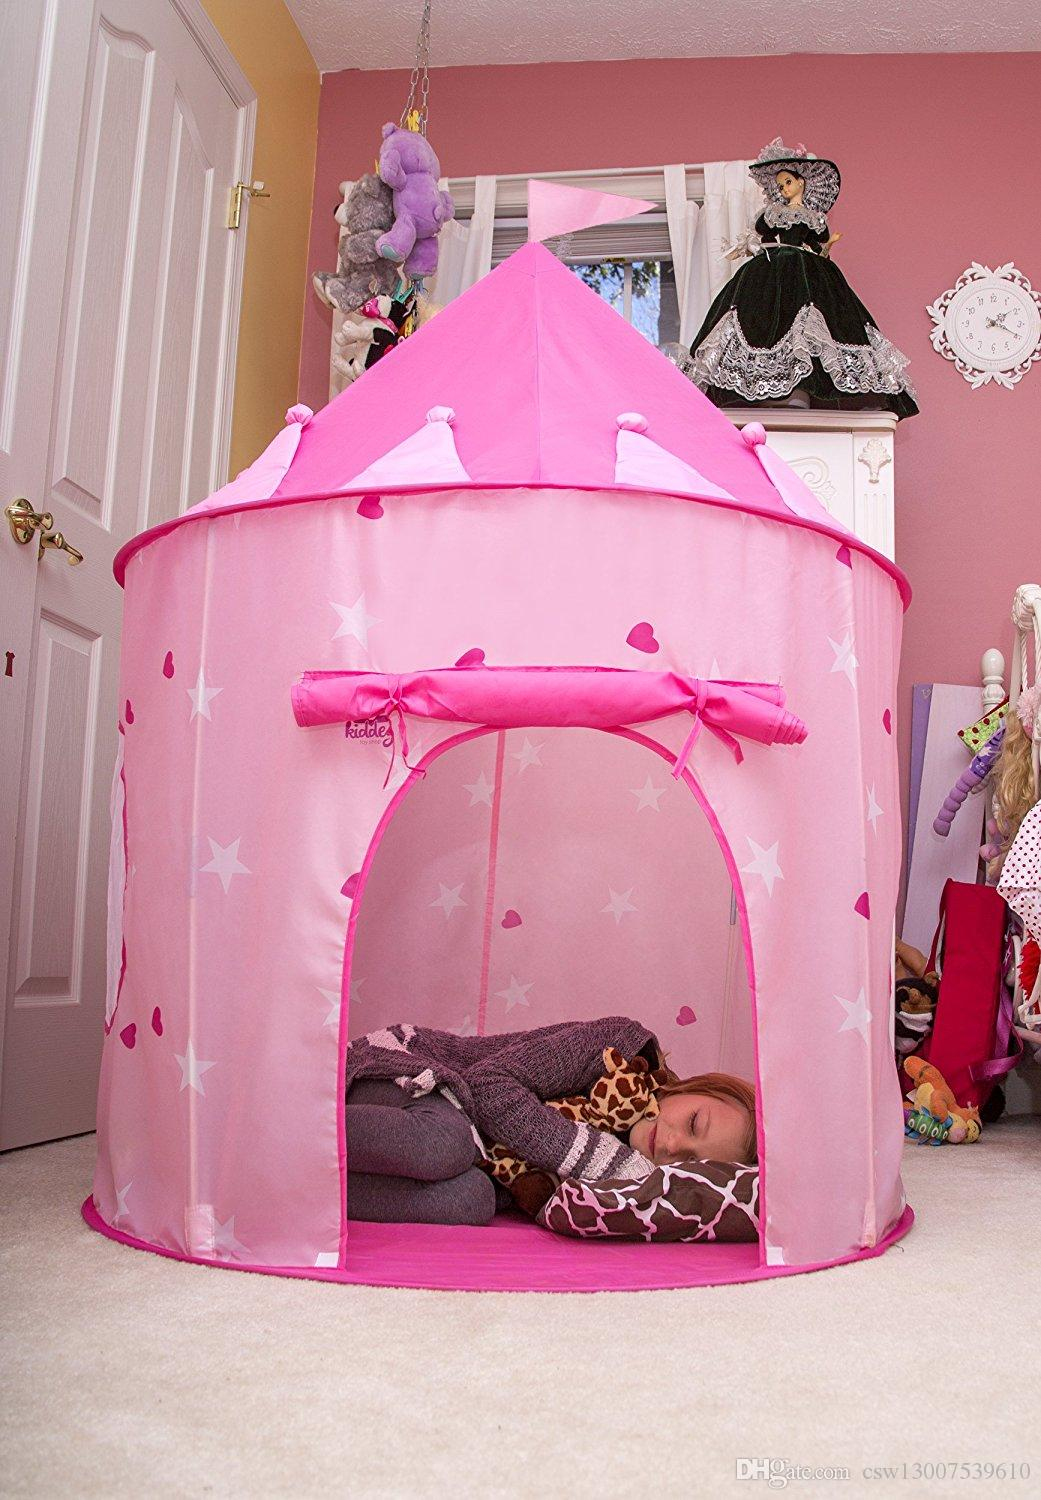 2018 Little Princess Castle Kids Play Tent Pink Indoor/Outdoor Playhouse For Girls Boys And Children Promotes Early Learning From Csw13007539610 ... & 2018 Little Princess Castle Kids Play Tent Pink Indoor/Outdoor ...